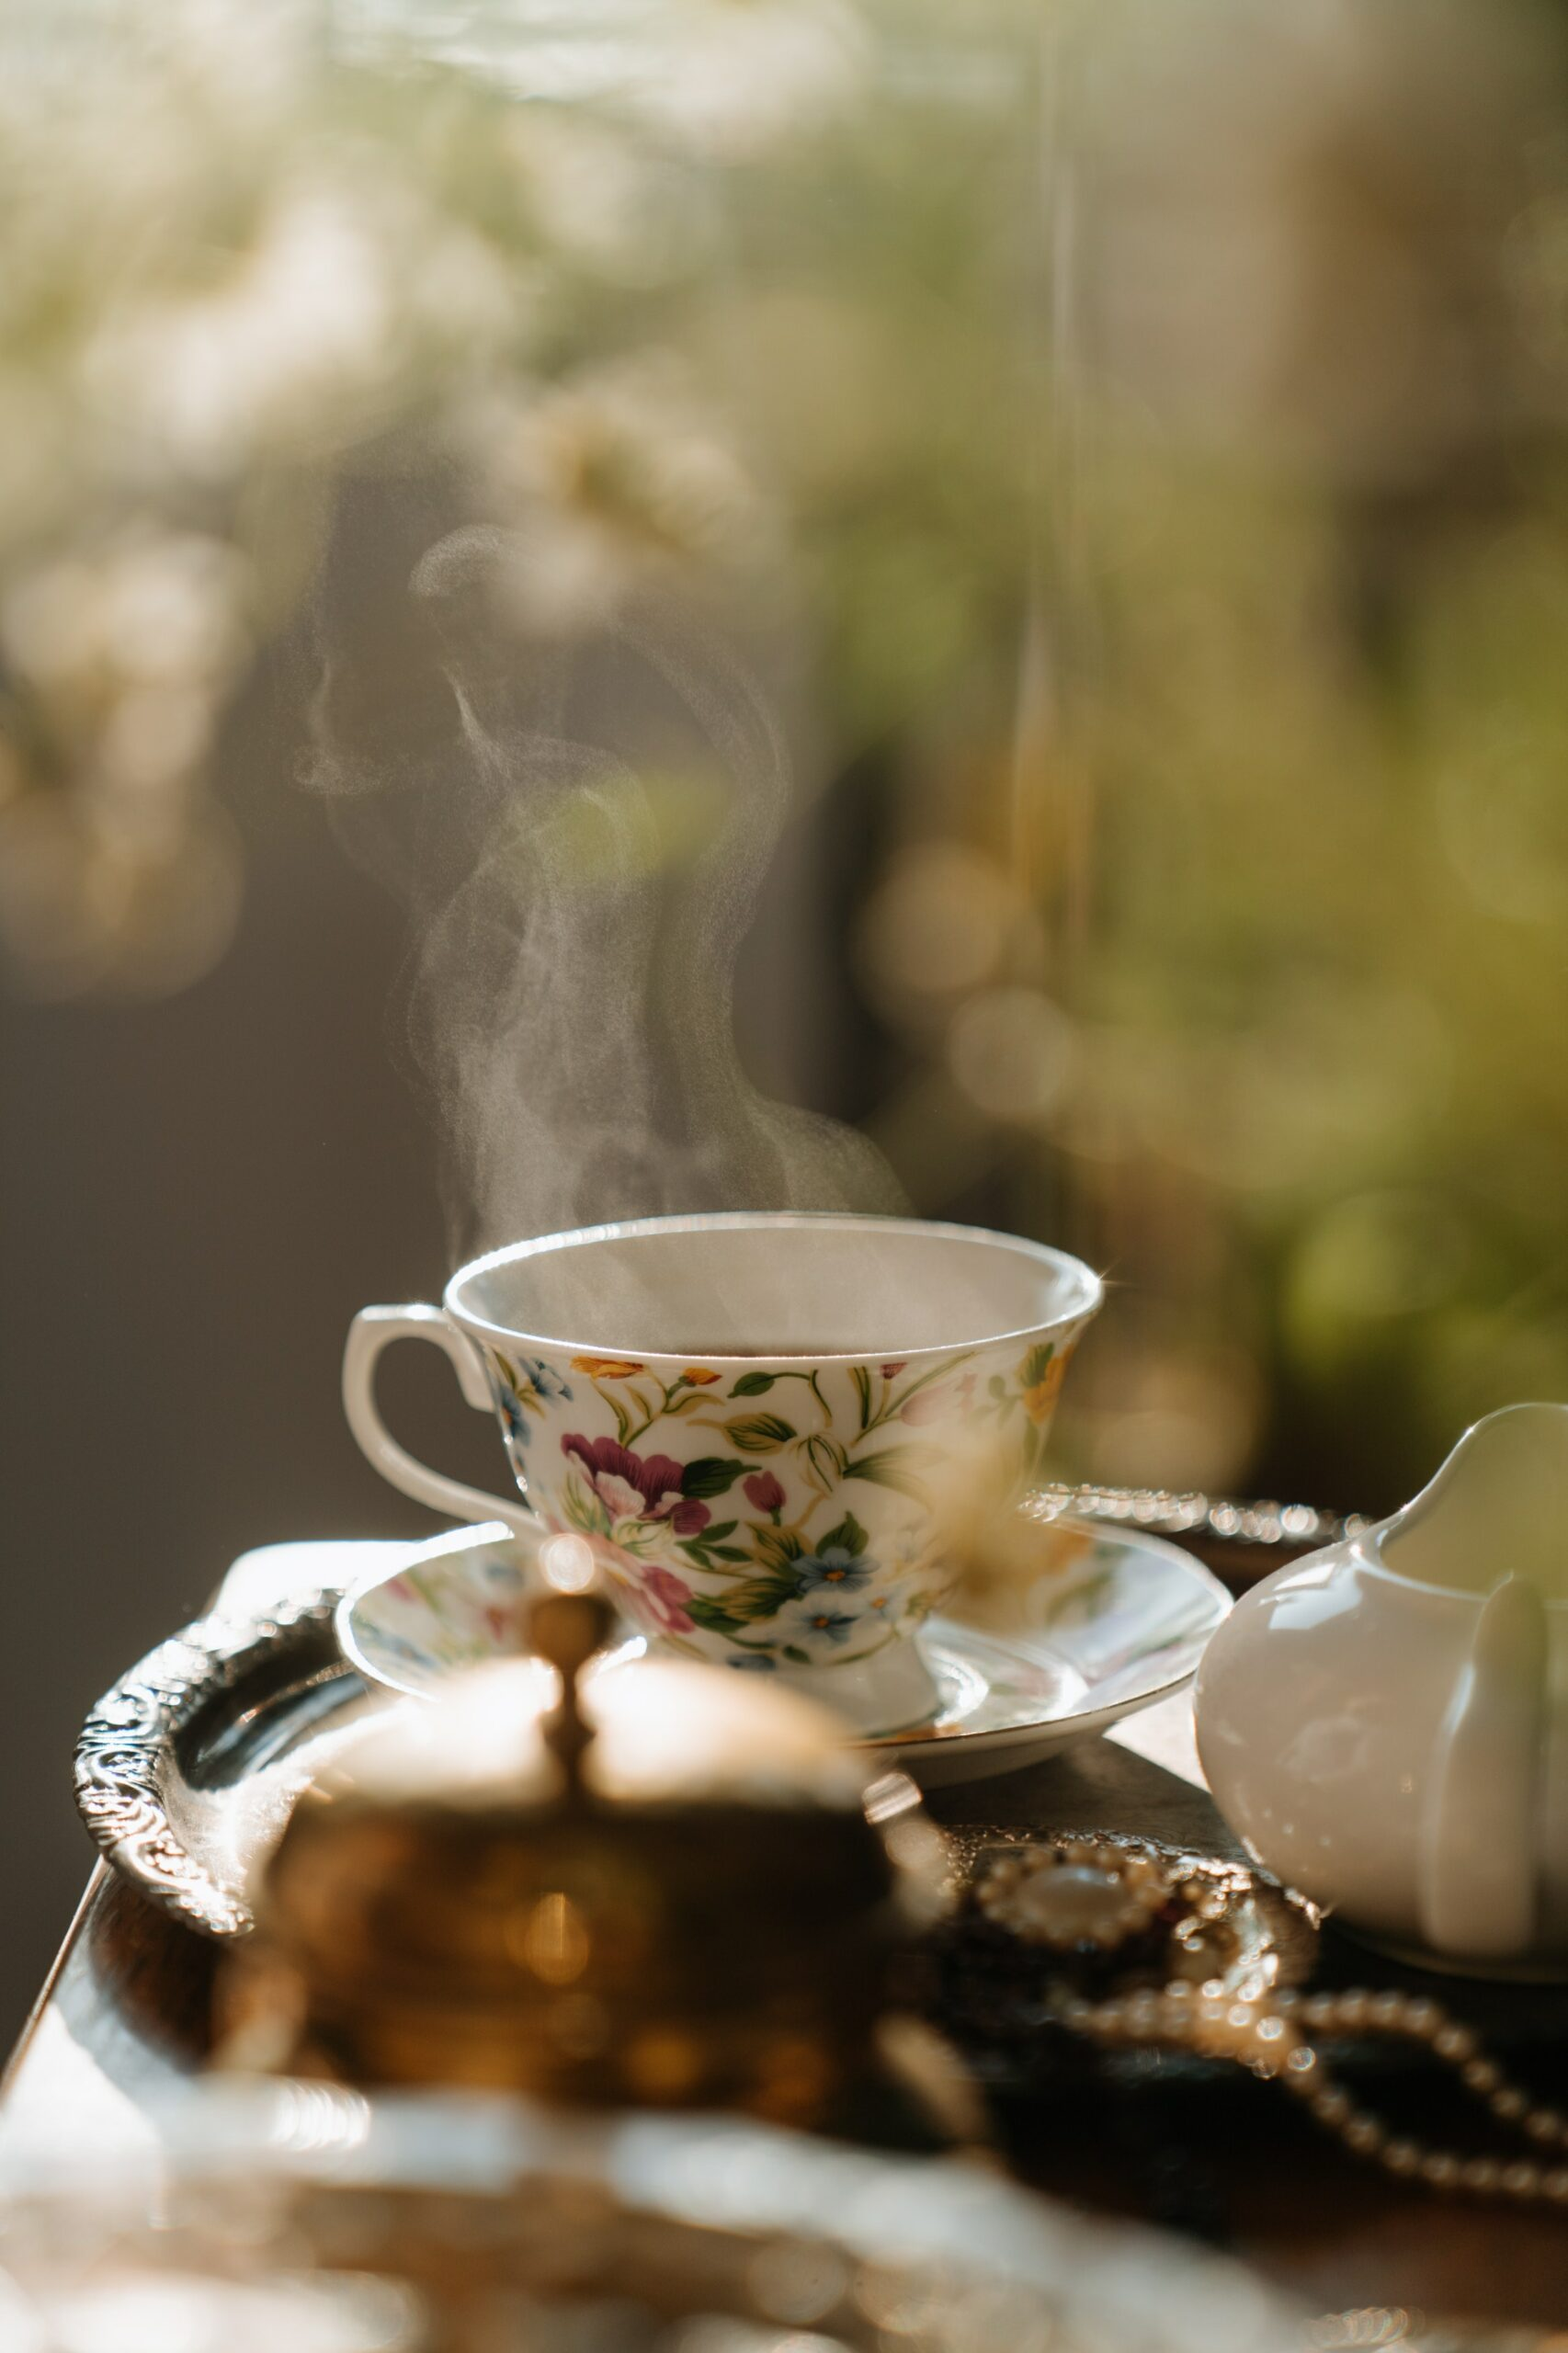 A steaming cup of tea.